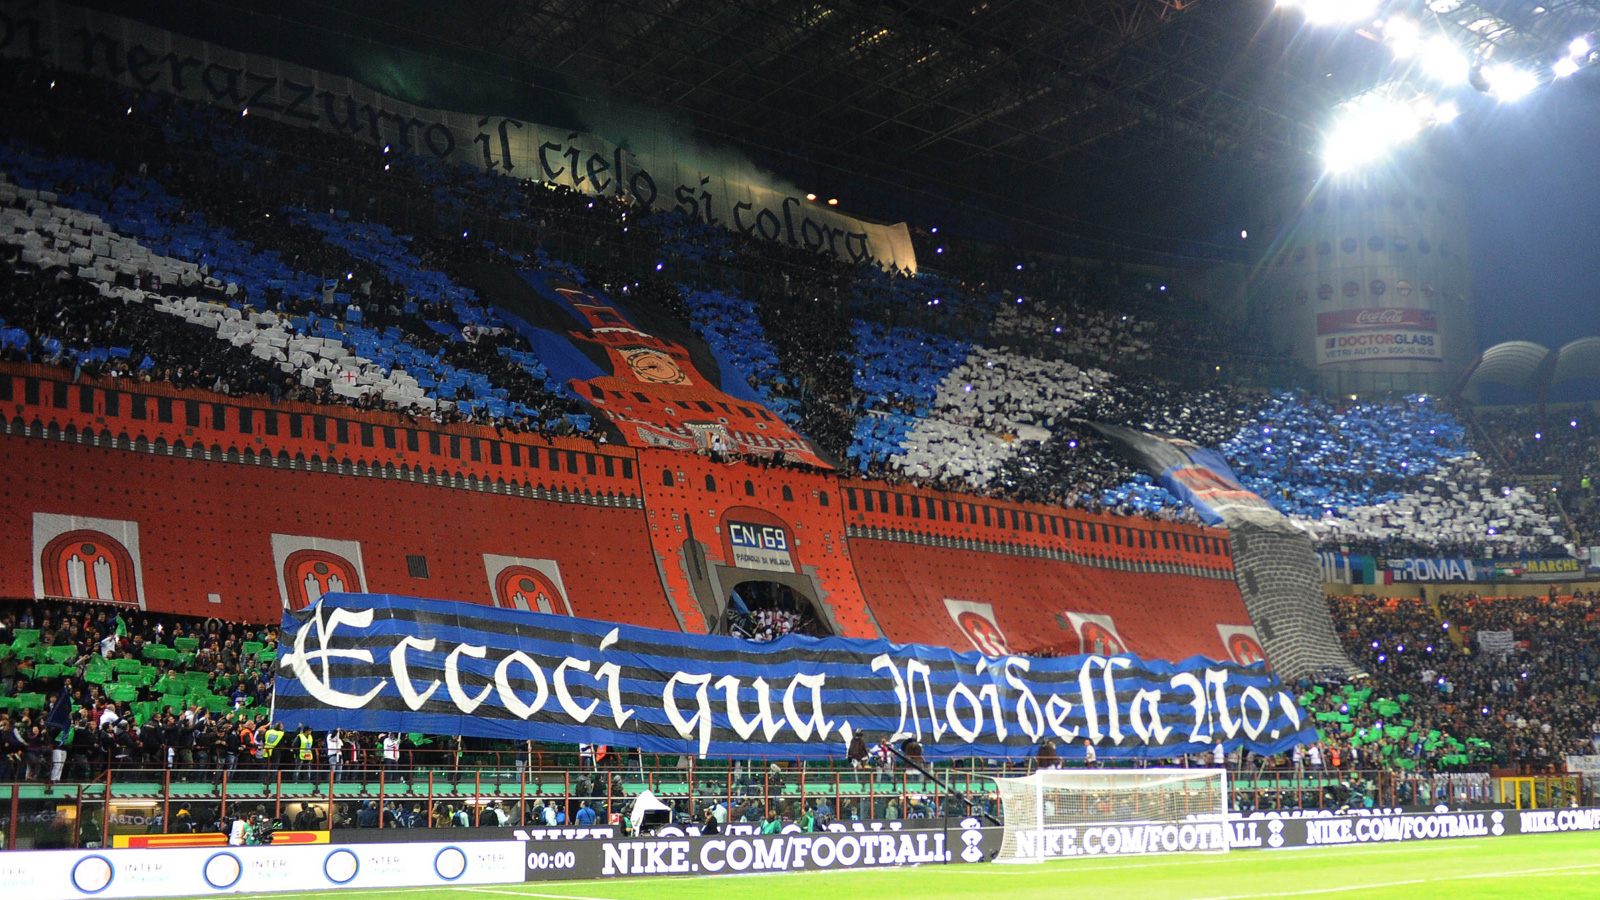 Inter Milan's Curva Nord announces its presence ahead of the April 2015 Derby della Madonnina–the annual clashes between city rivals Inter and AC Milan.